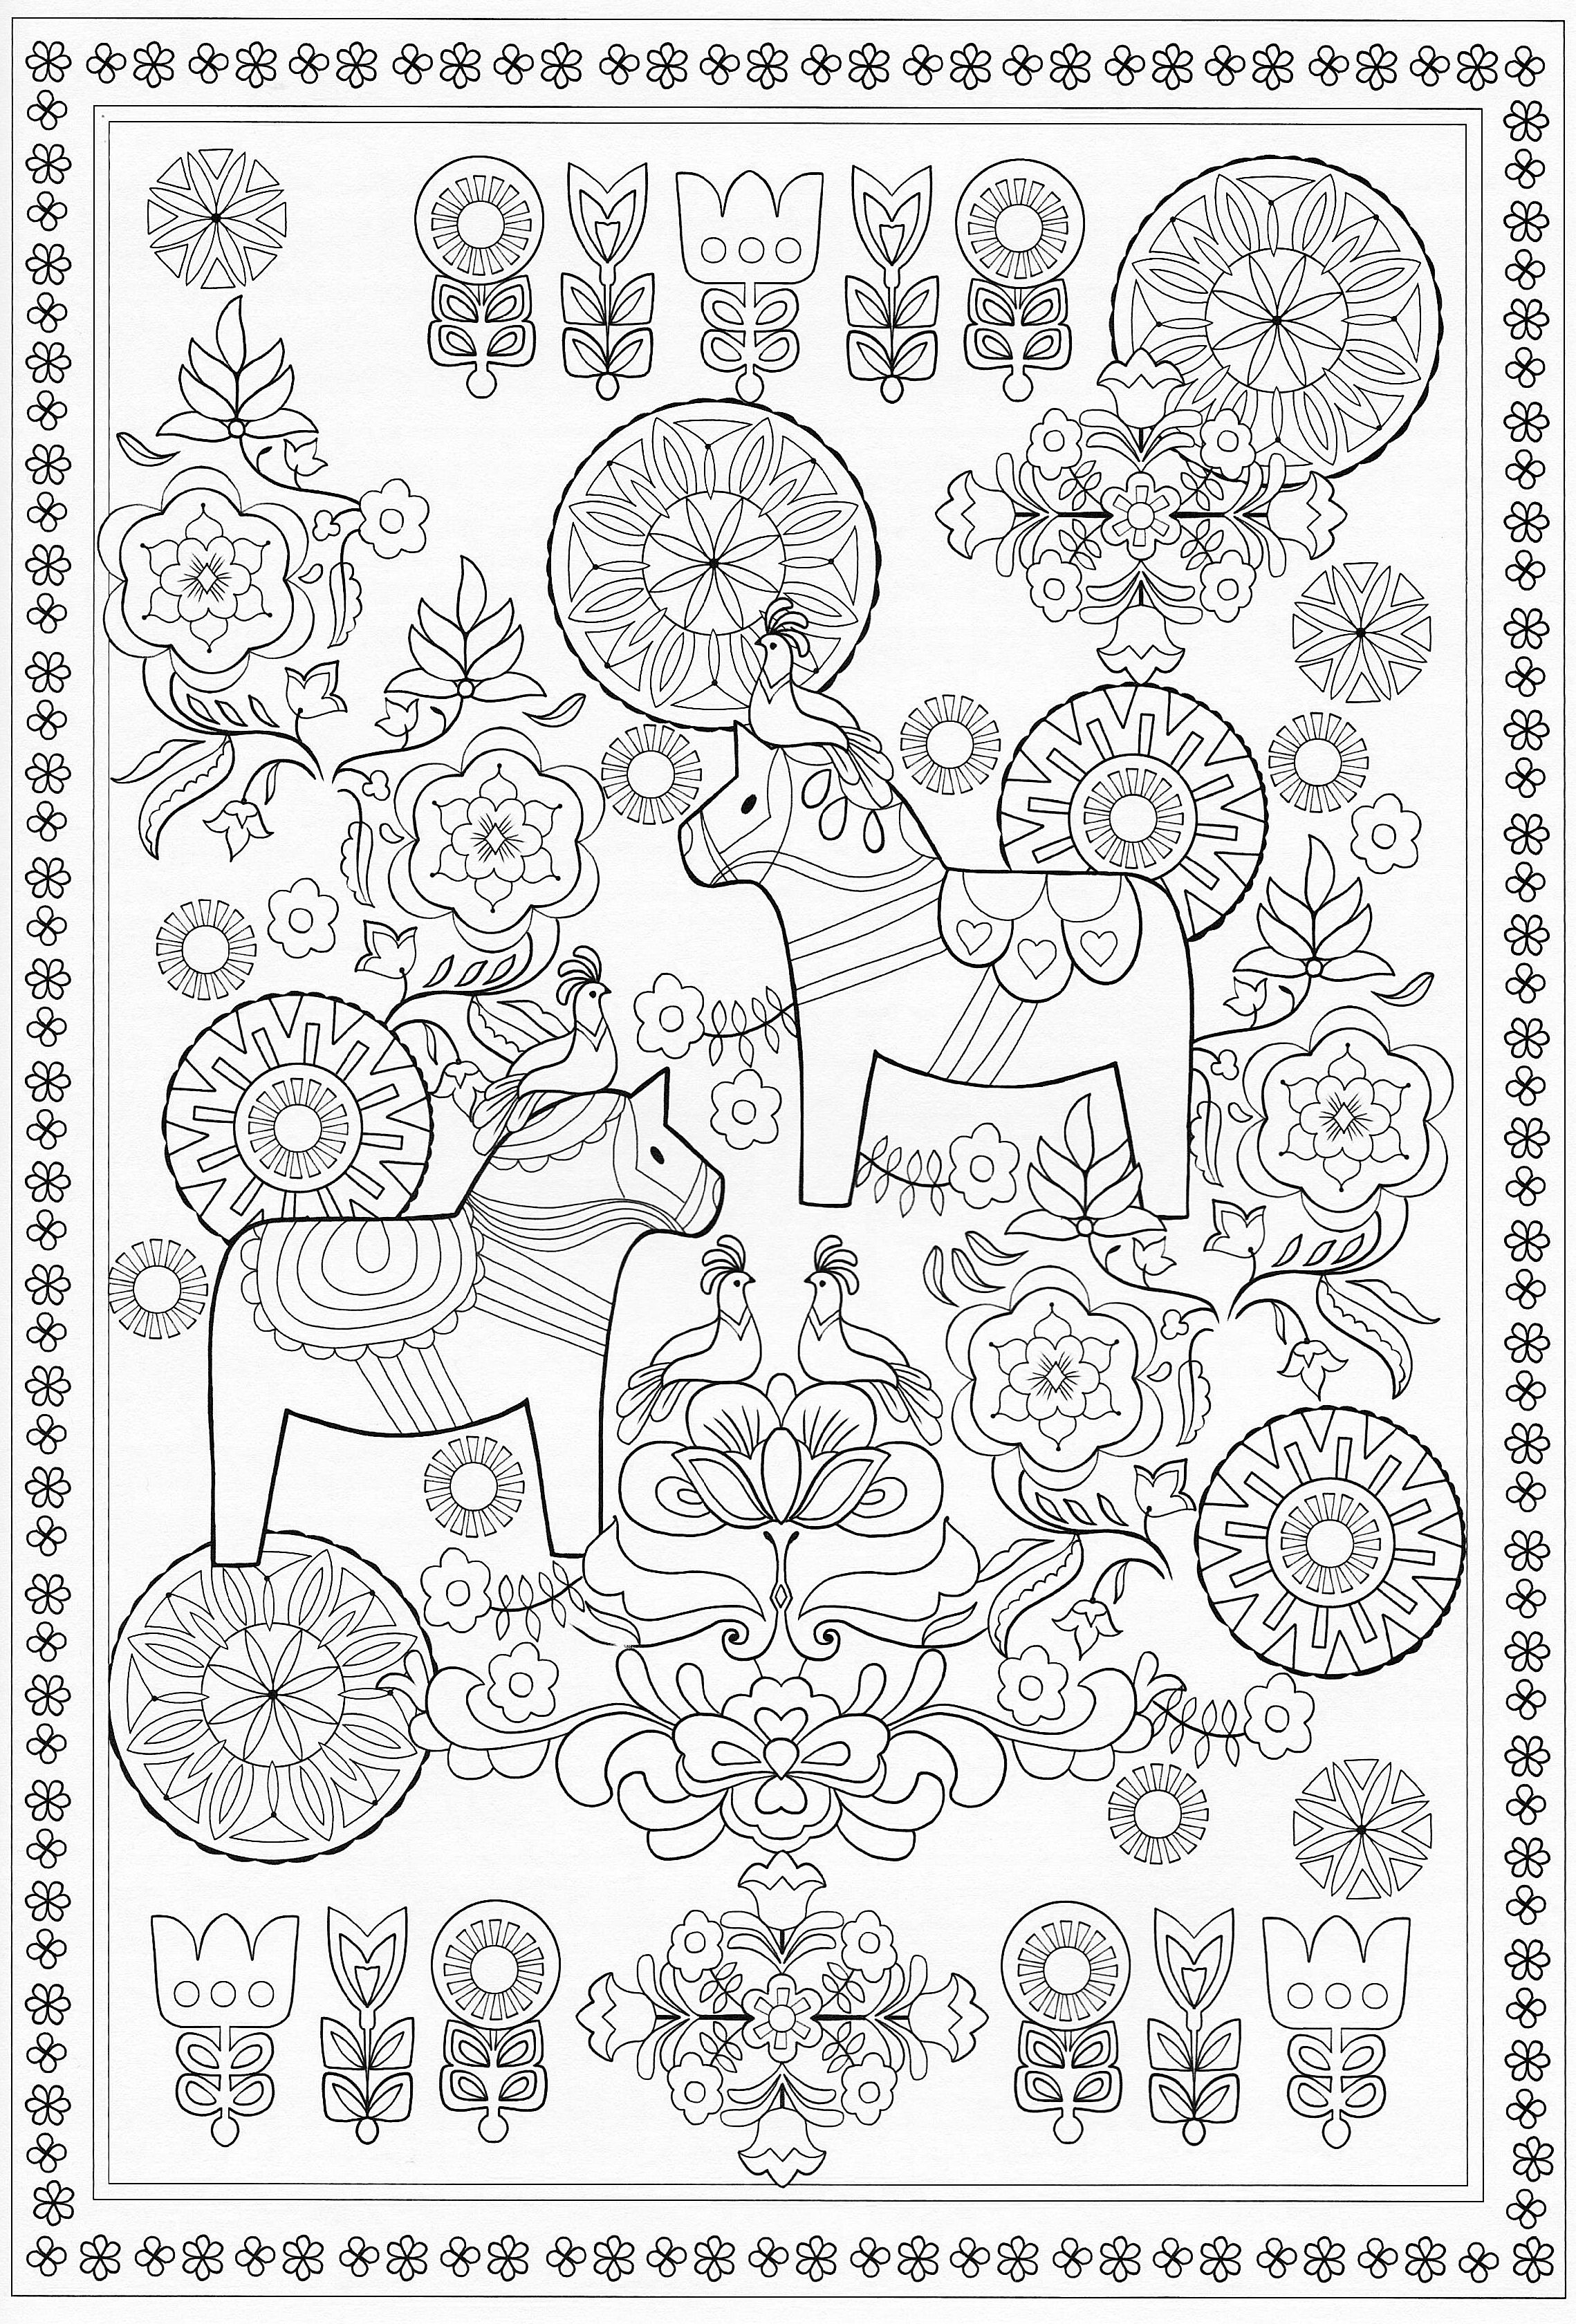 Scandinavian Coloring Book Pg 58 Would Make Cute Designs On An Ornament